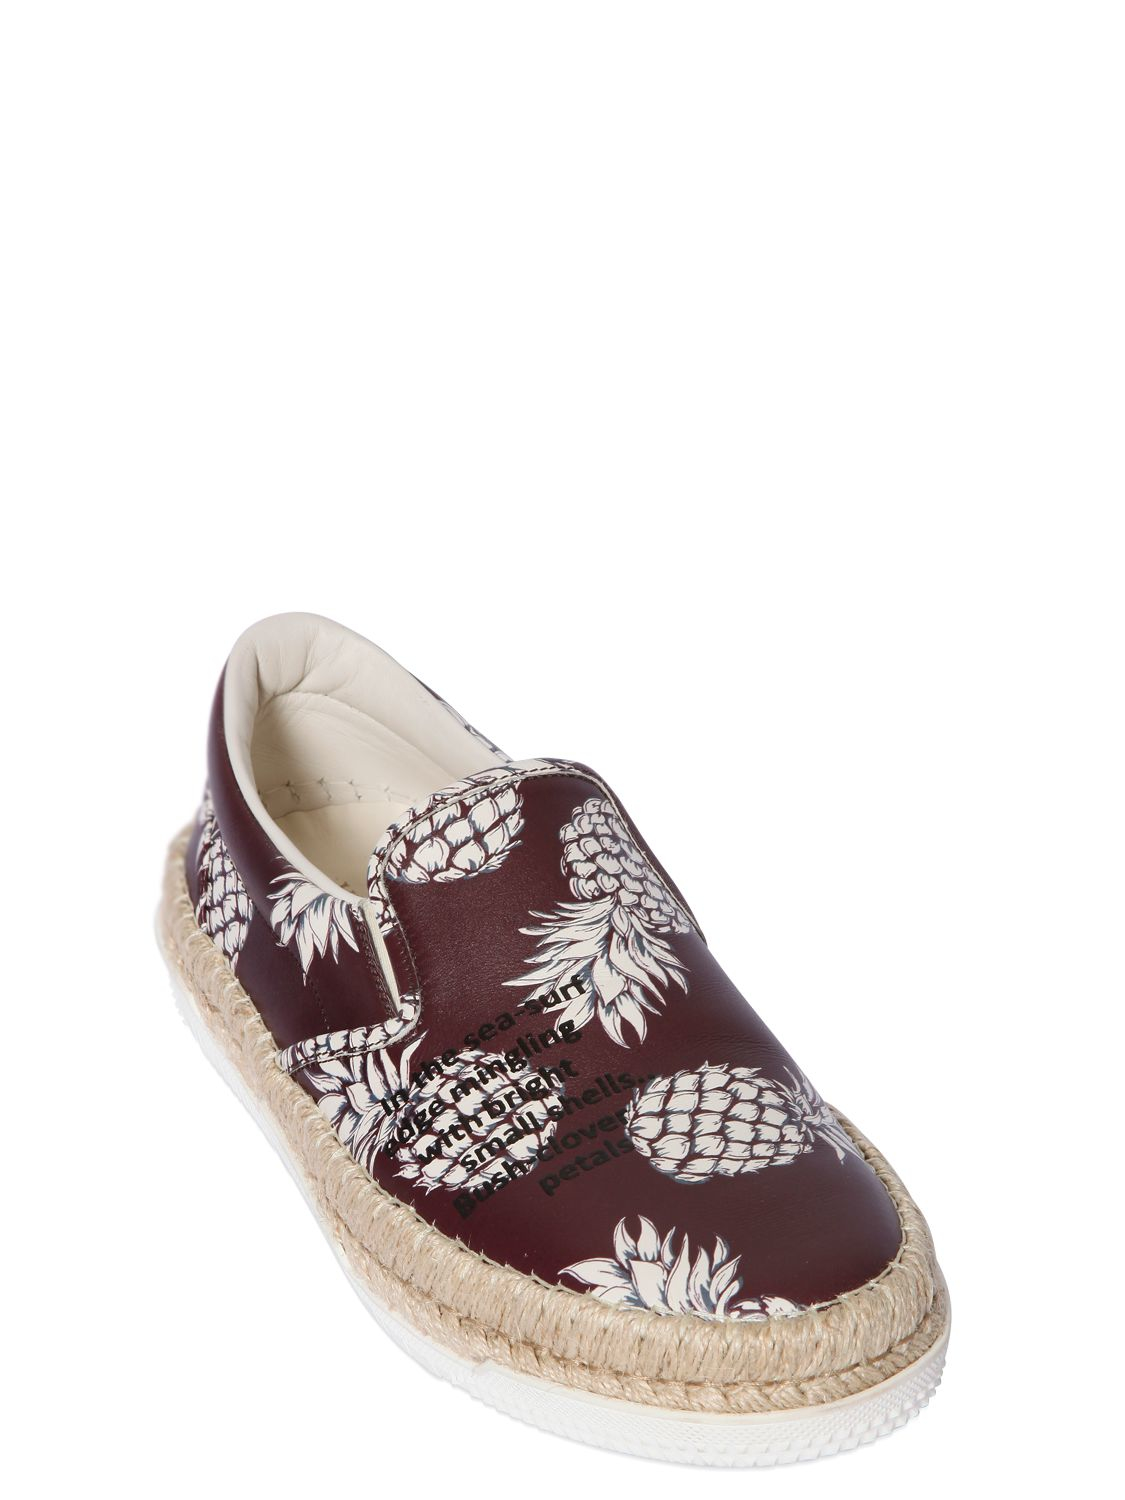 Lyst Valentino Pineapple Leather Espadrille Sneakers In